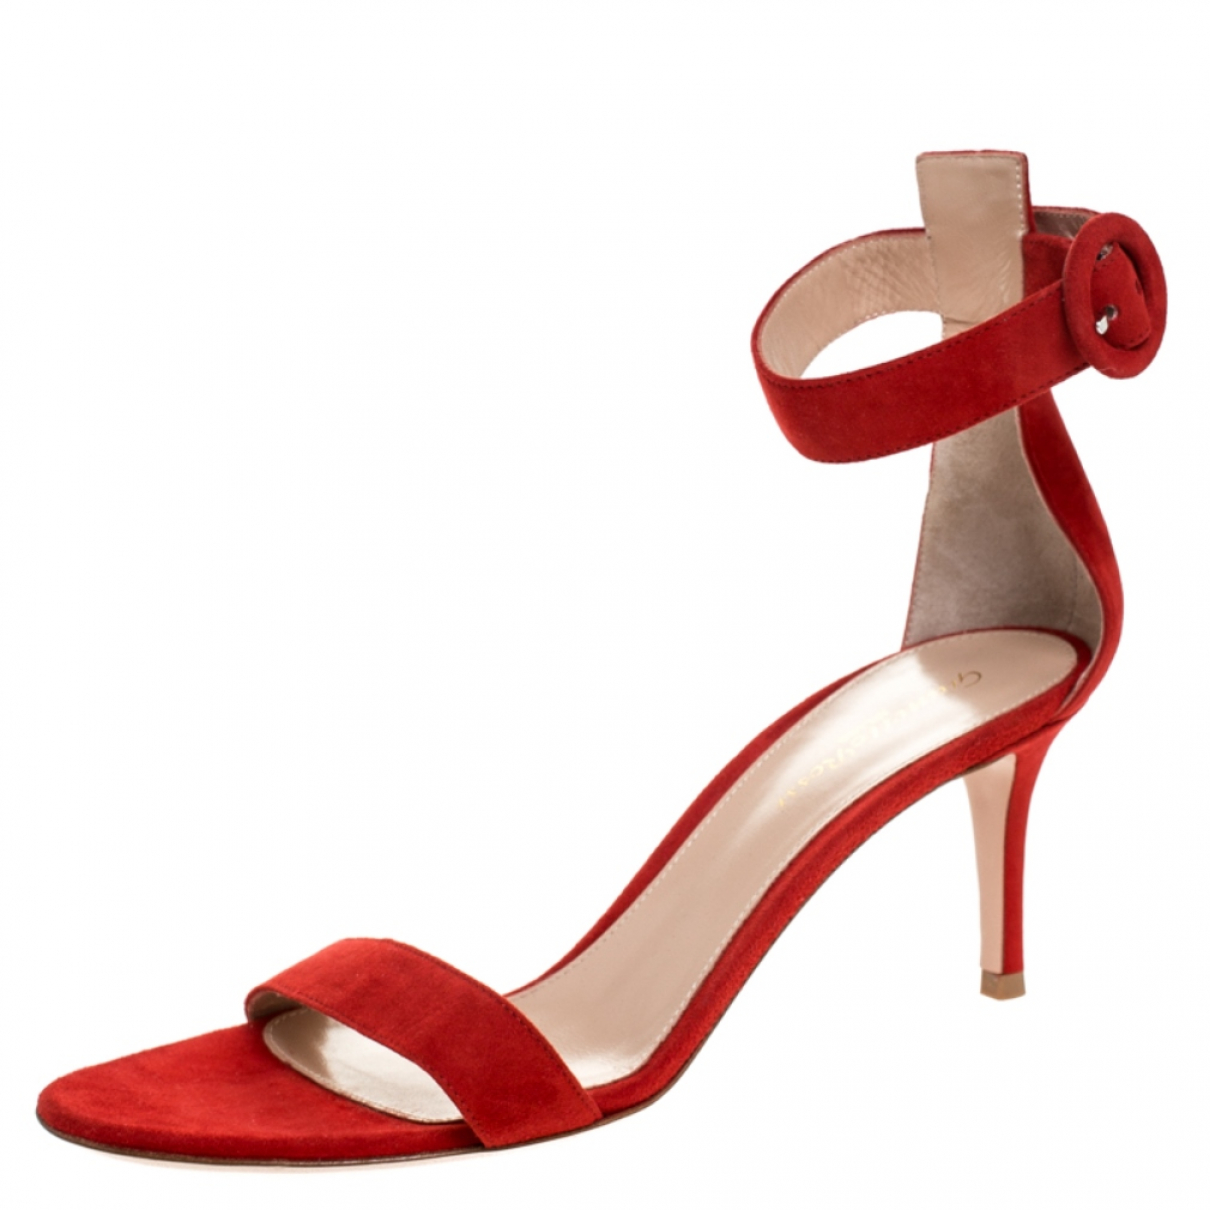 Gianvito Rossi \N Red Leather Sandals for Women 6.5 US